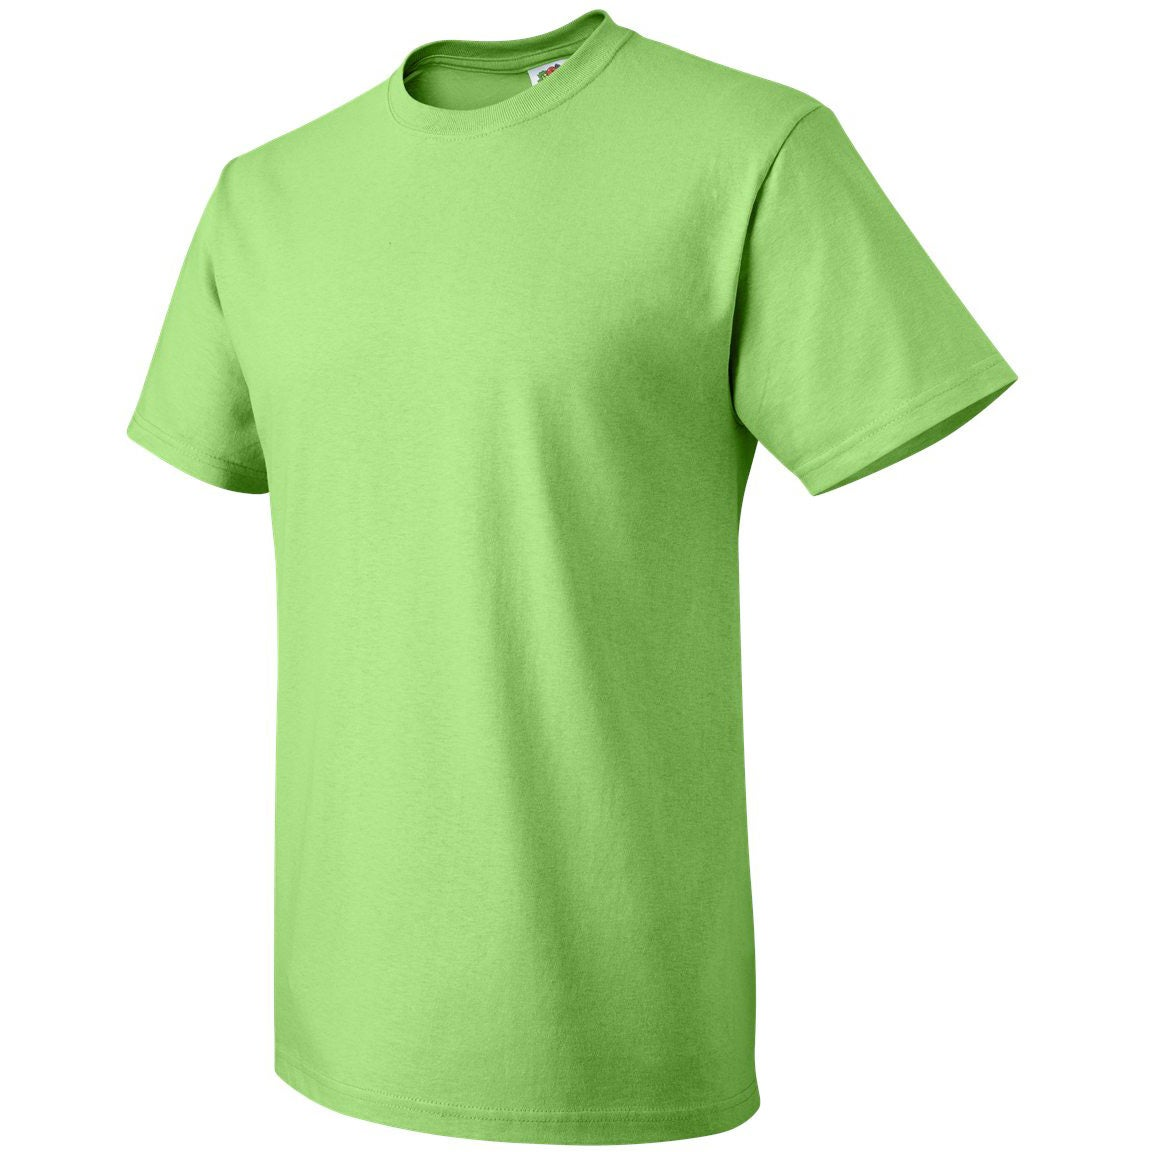 Fruit of the loom heavy cotton t shirt colors 100 for Custom full color t shirts